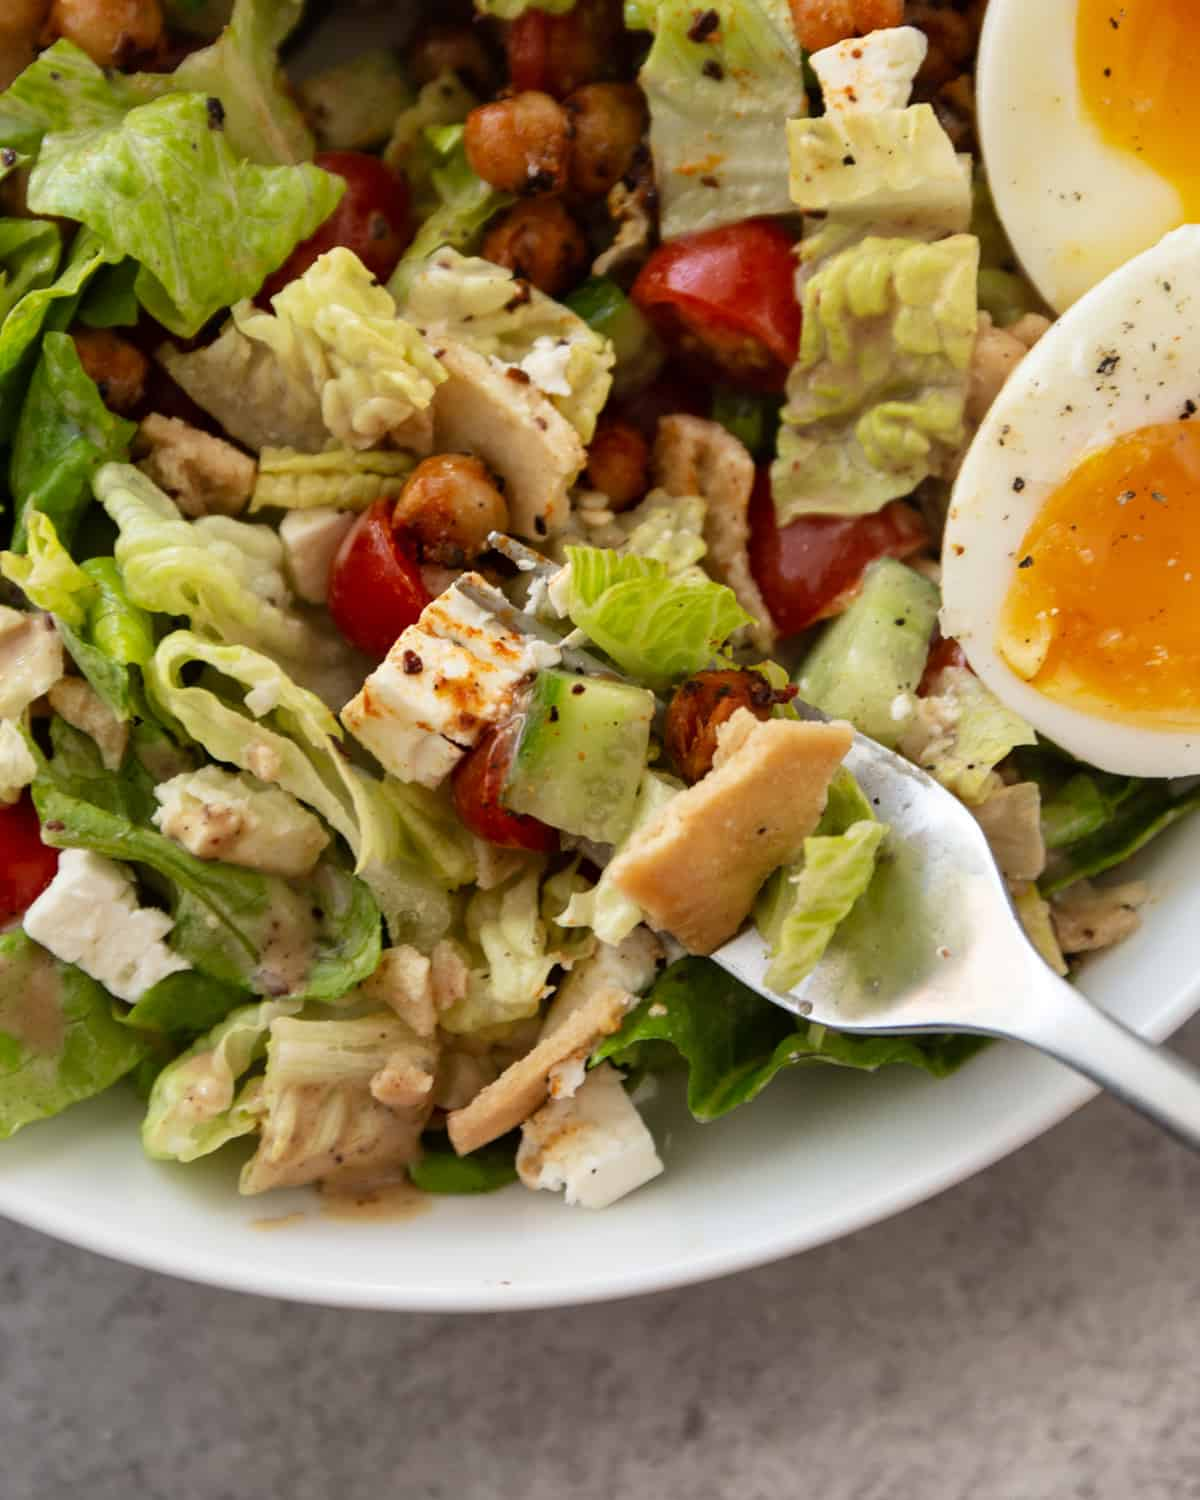 a fork in a bowl of fattoush salad